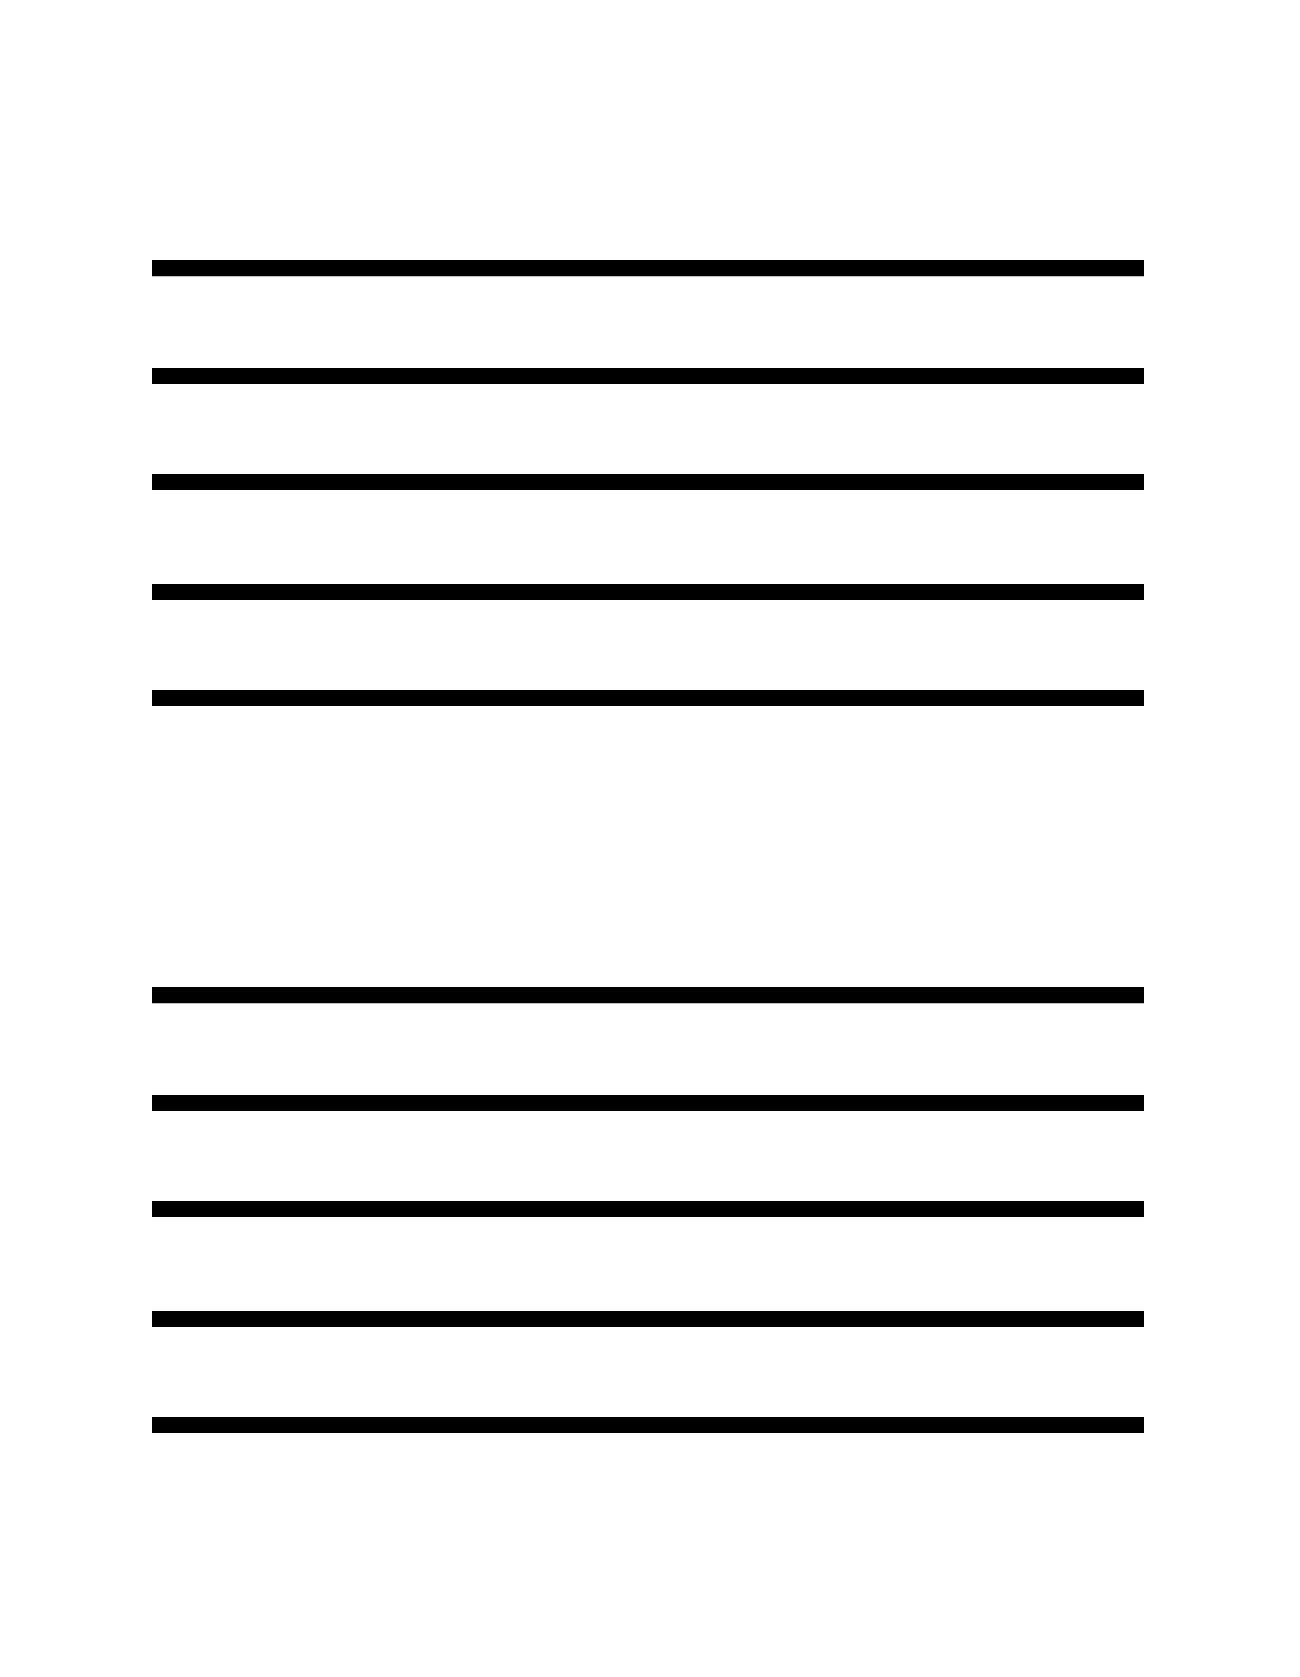 Free Printable Staff Paper (86+ Images In Collection) Page 1 - Free Printable Staff Paper